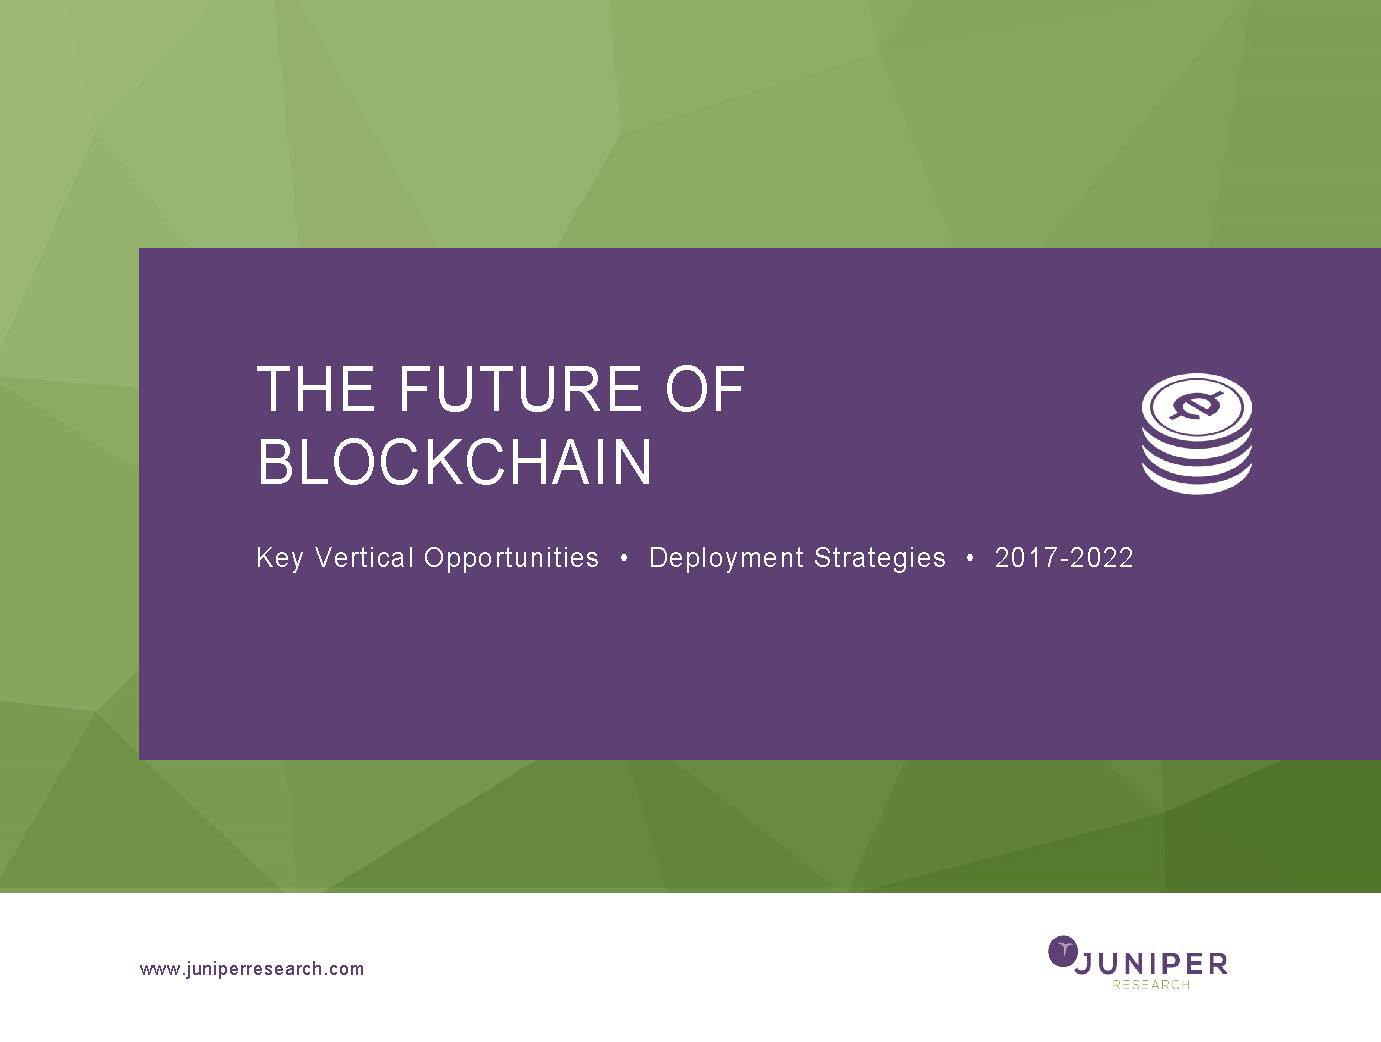 The Future of Blockchain: Deep Dive Data & Forecasting 2017-2022